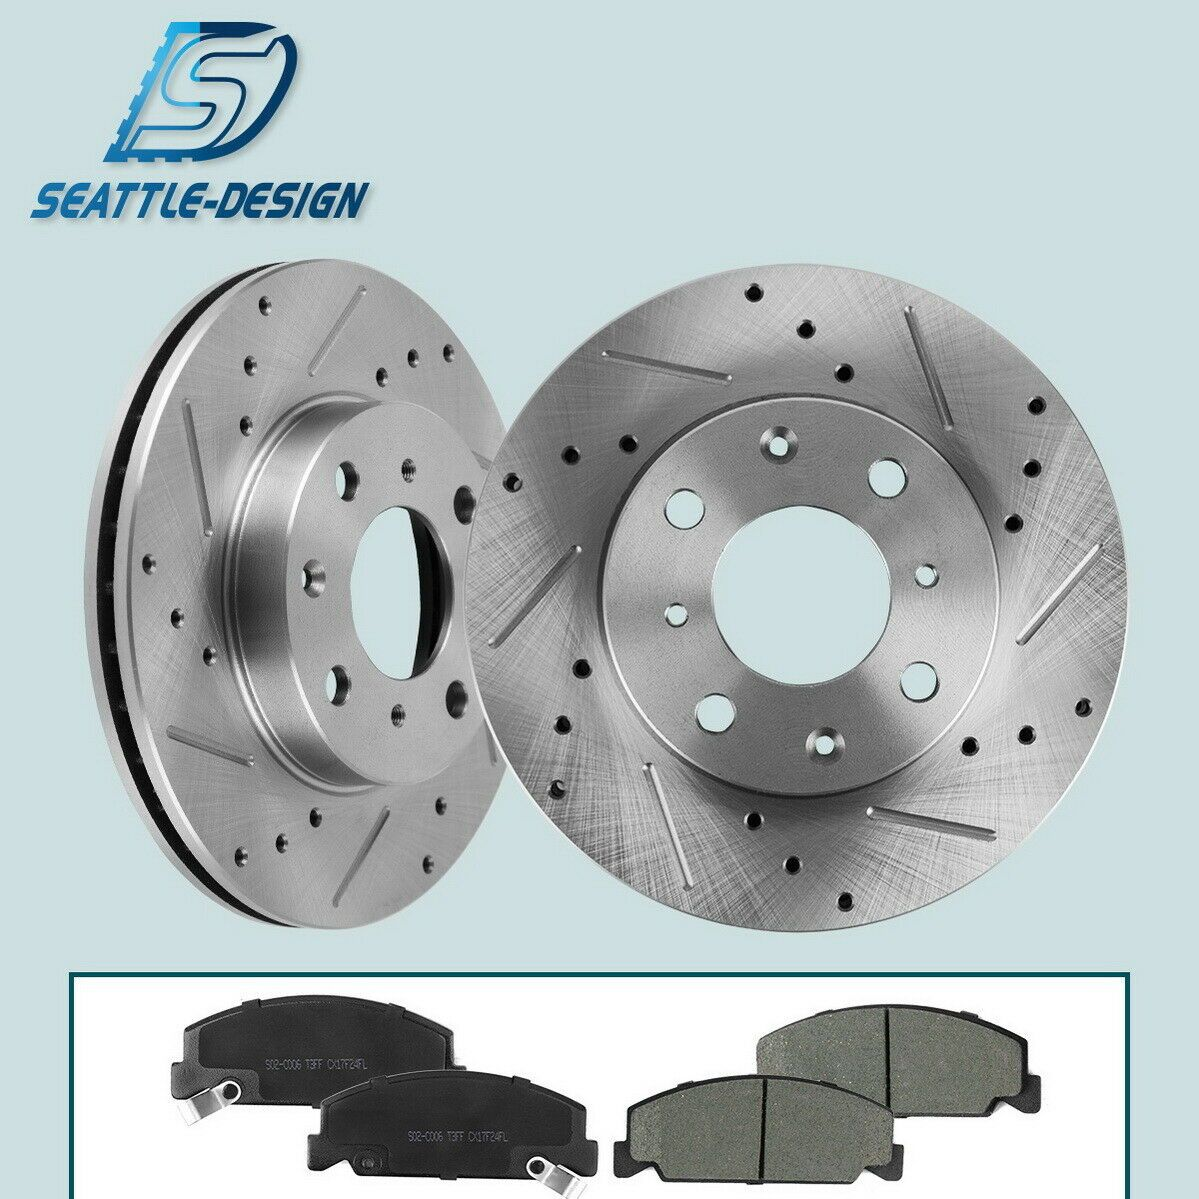 Nakamoto Brake Rotor Drilled Slotted /& Ceramic Pad Kit Front /& Rear Set for BMW